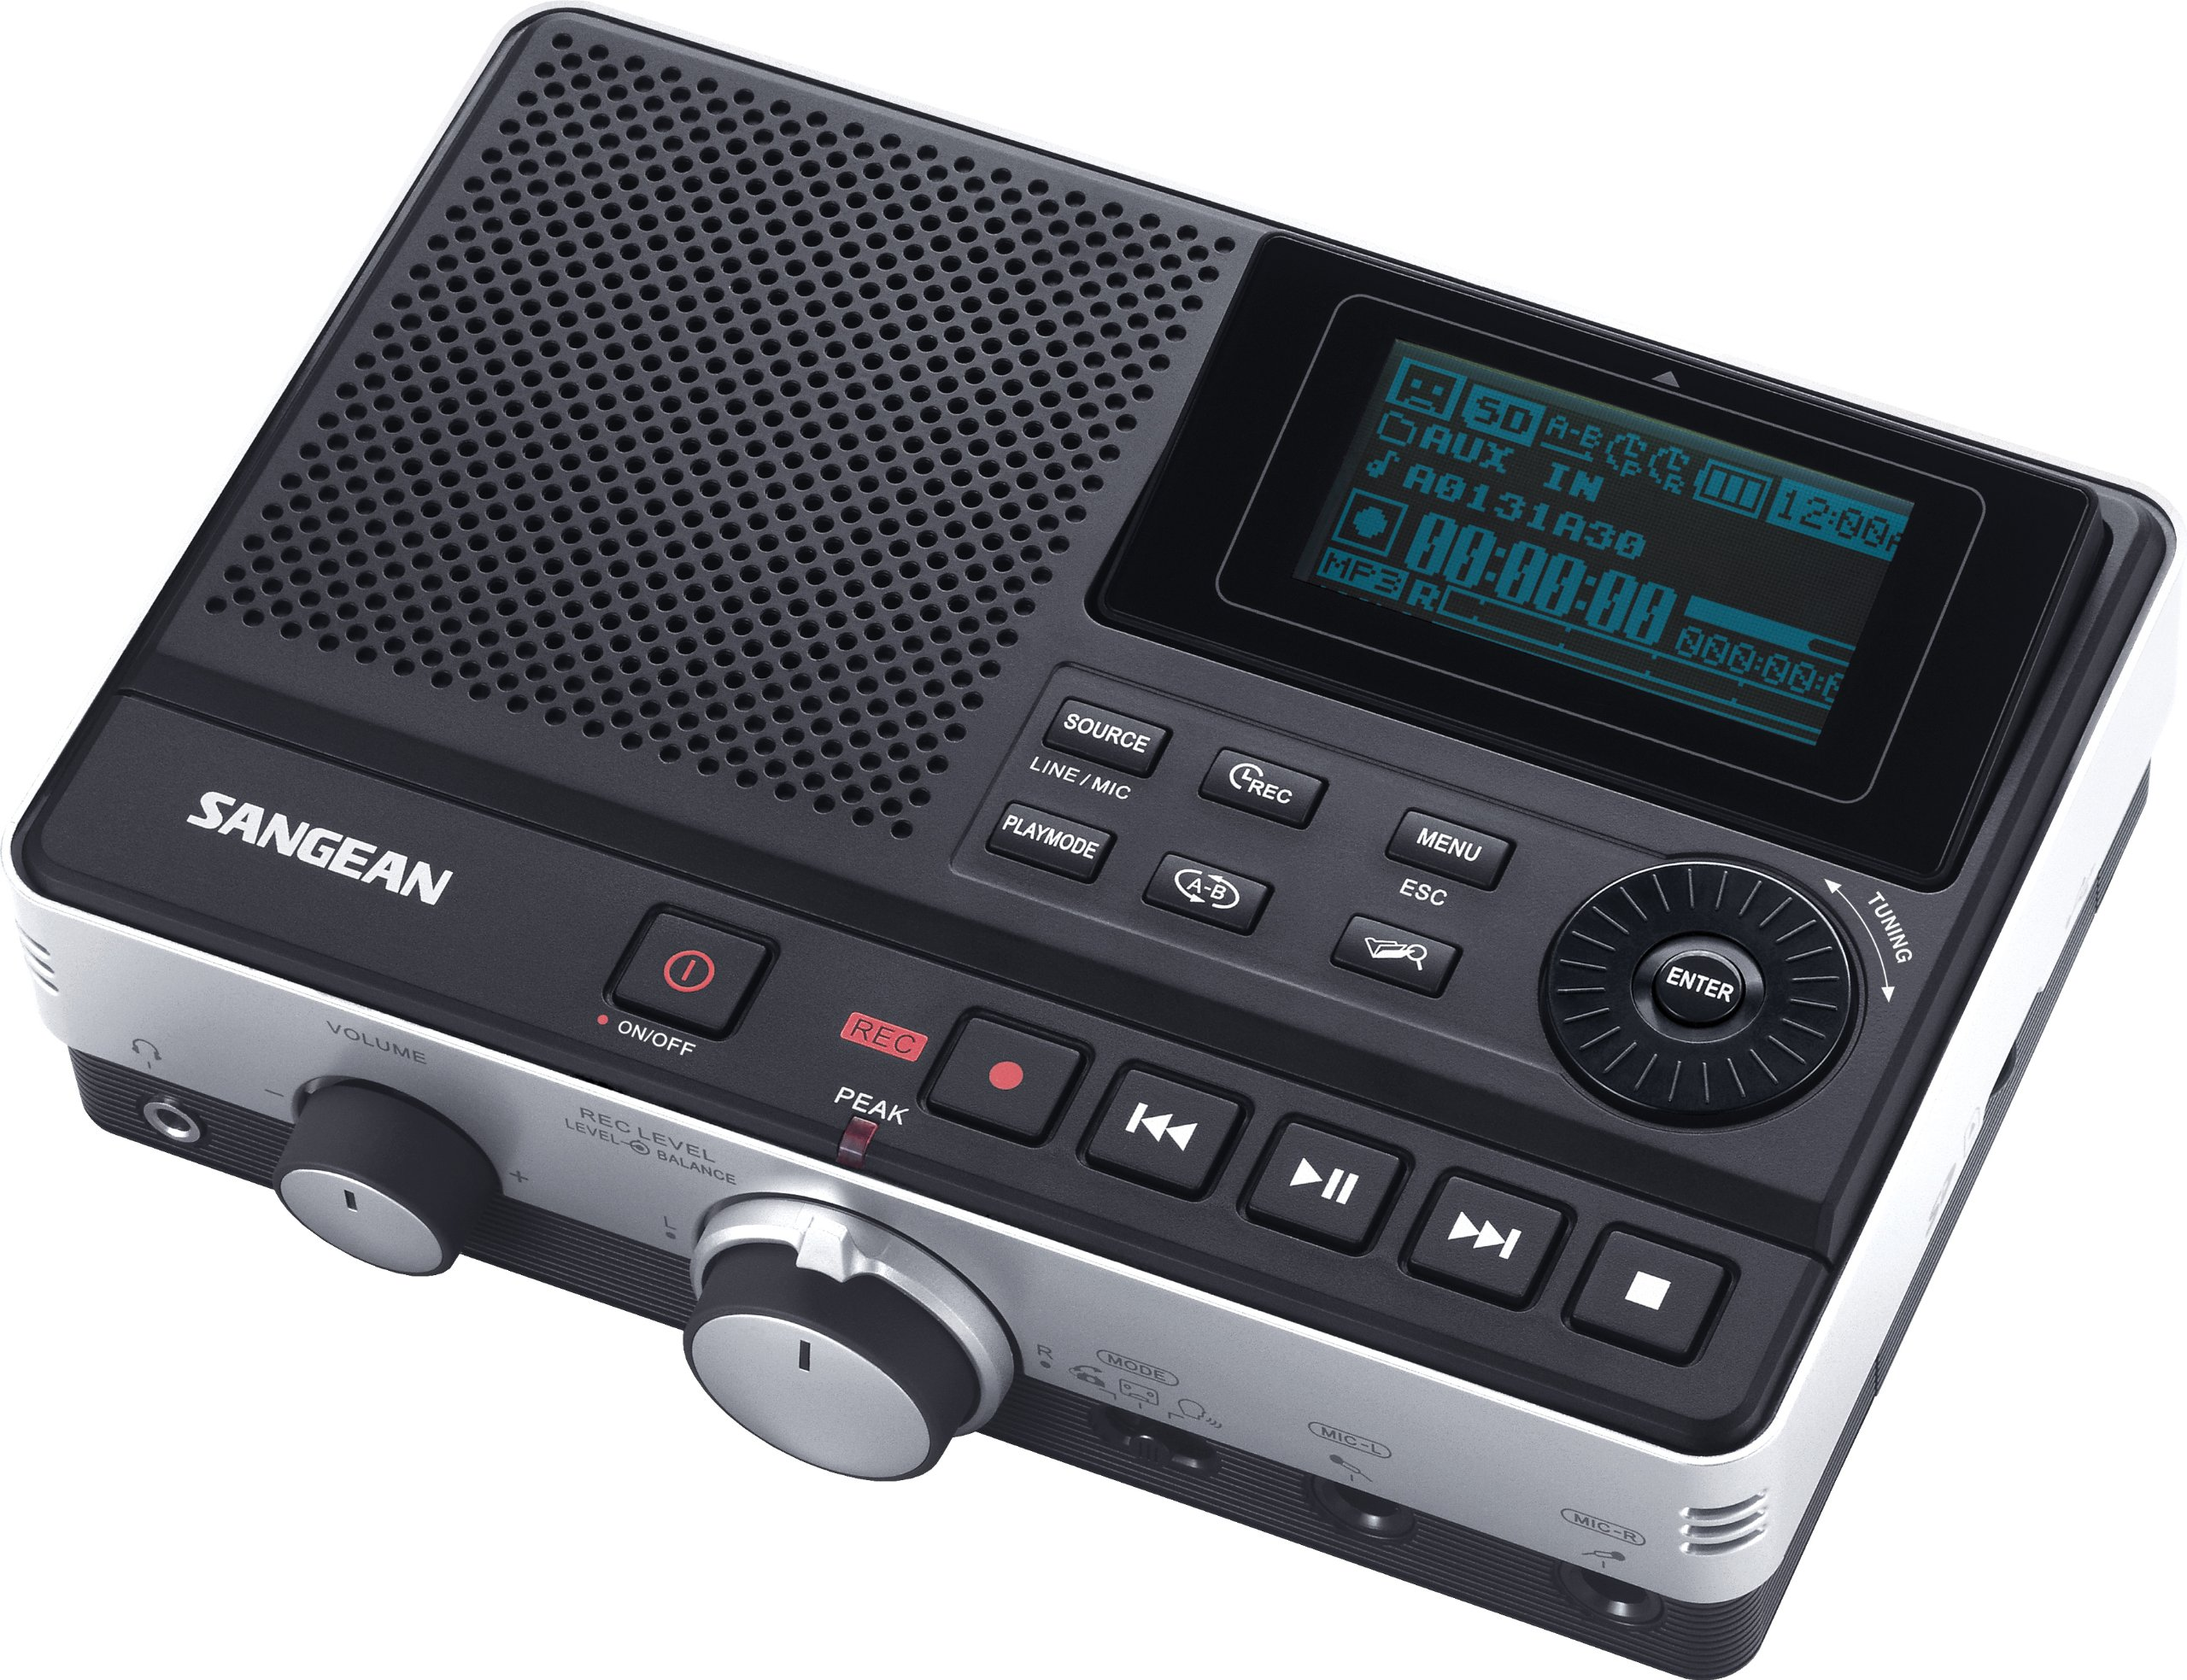 Sangean DAR-101 Professional Grade Digital MP3 Recorder (Black)